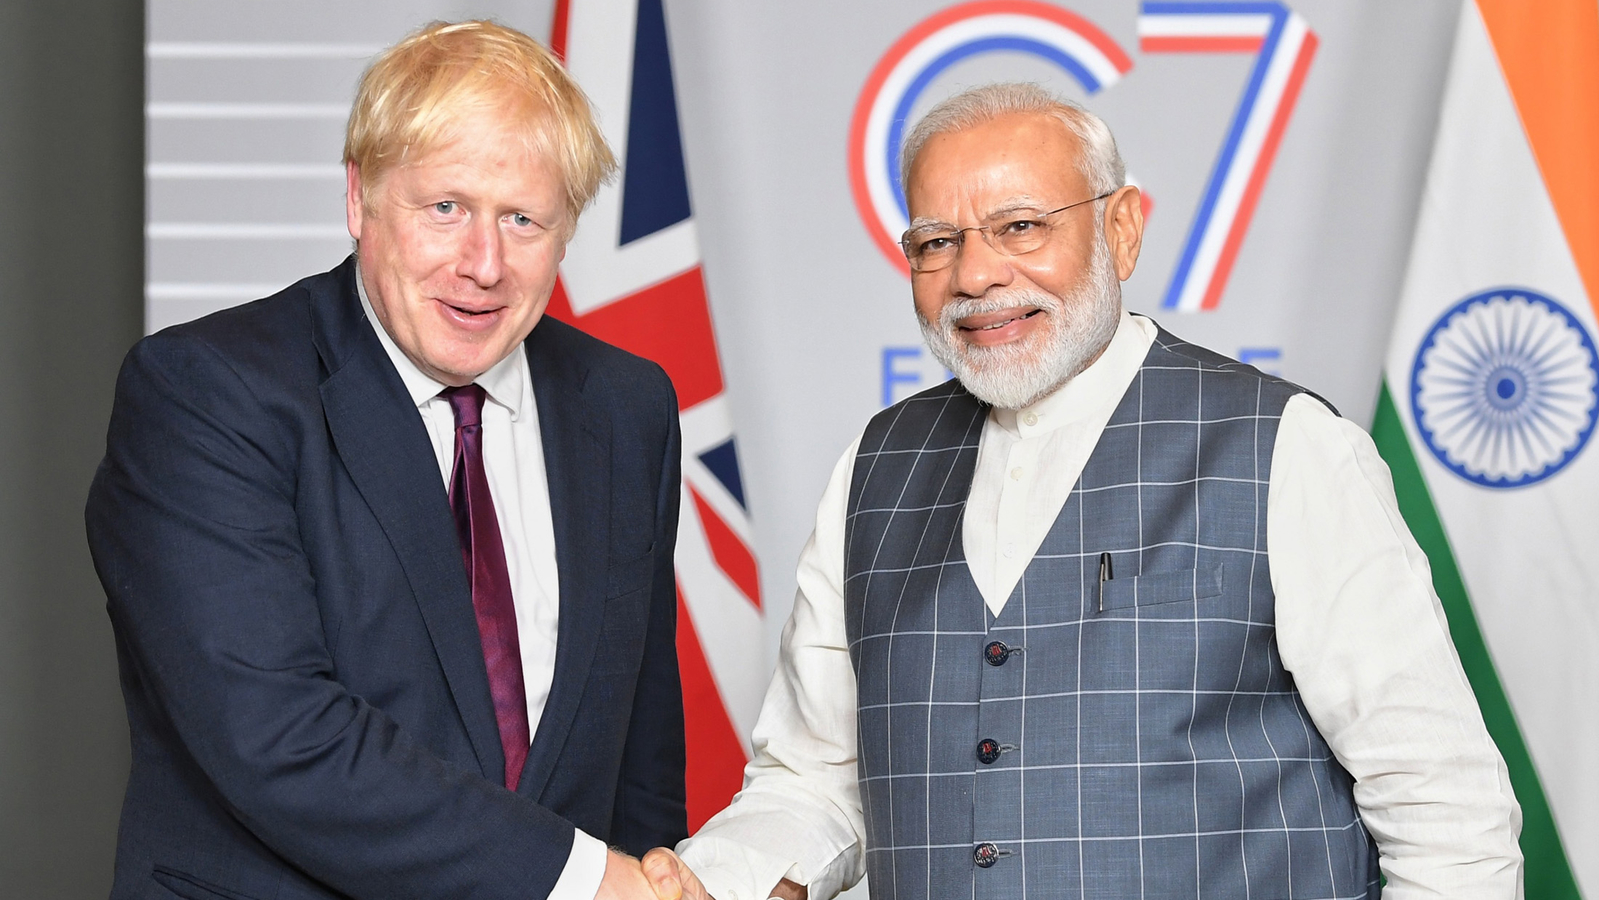 In Boris Johnson's April 26 visit to unlock opportunities, a trade pact on table